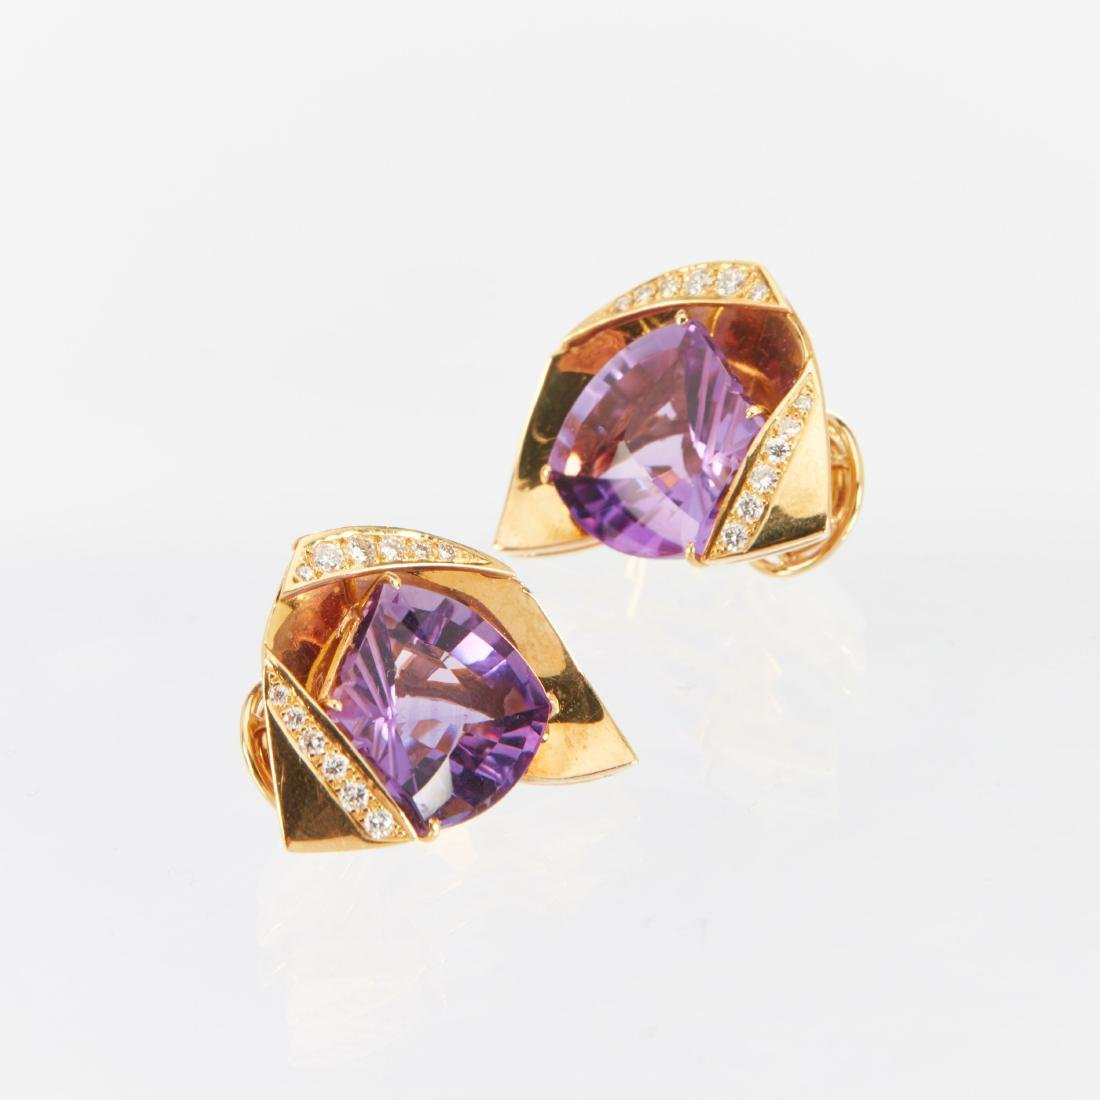 An 18K, Amethyst & Diamond Earrings, Brooch, Ring Set - 9